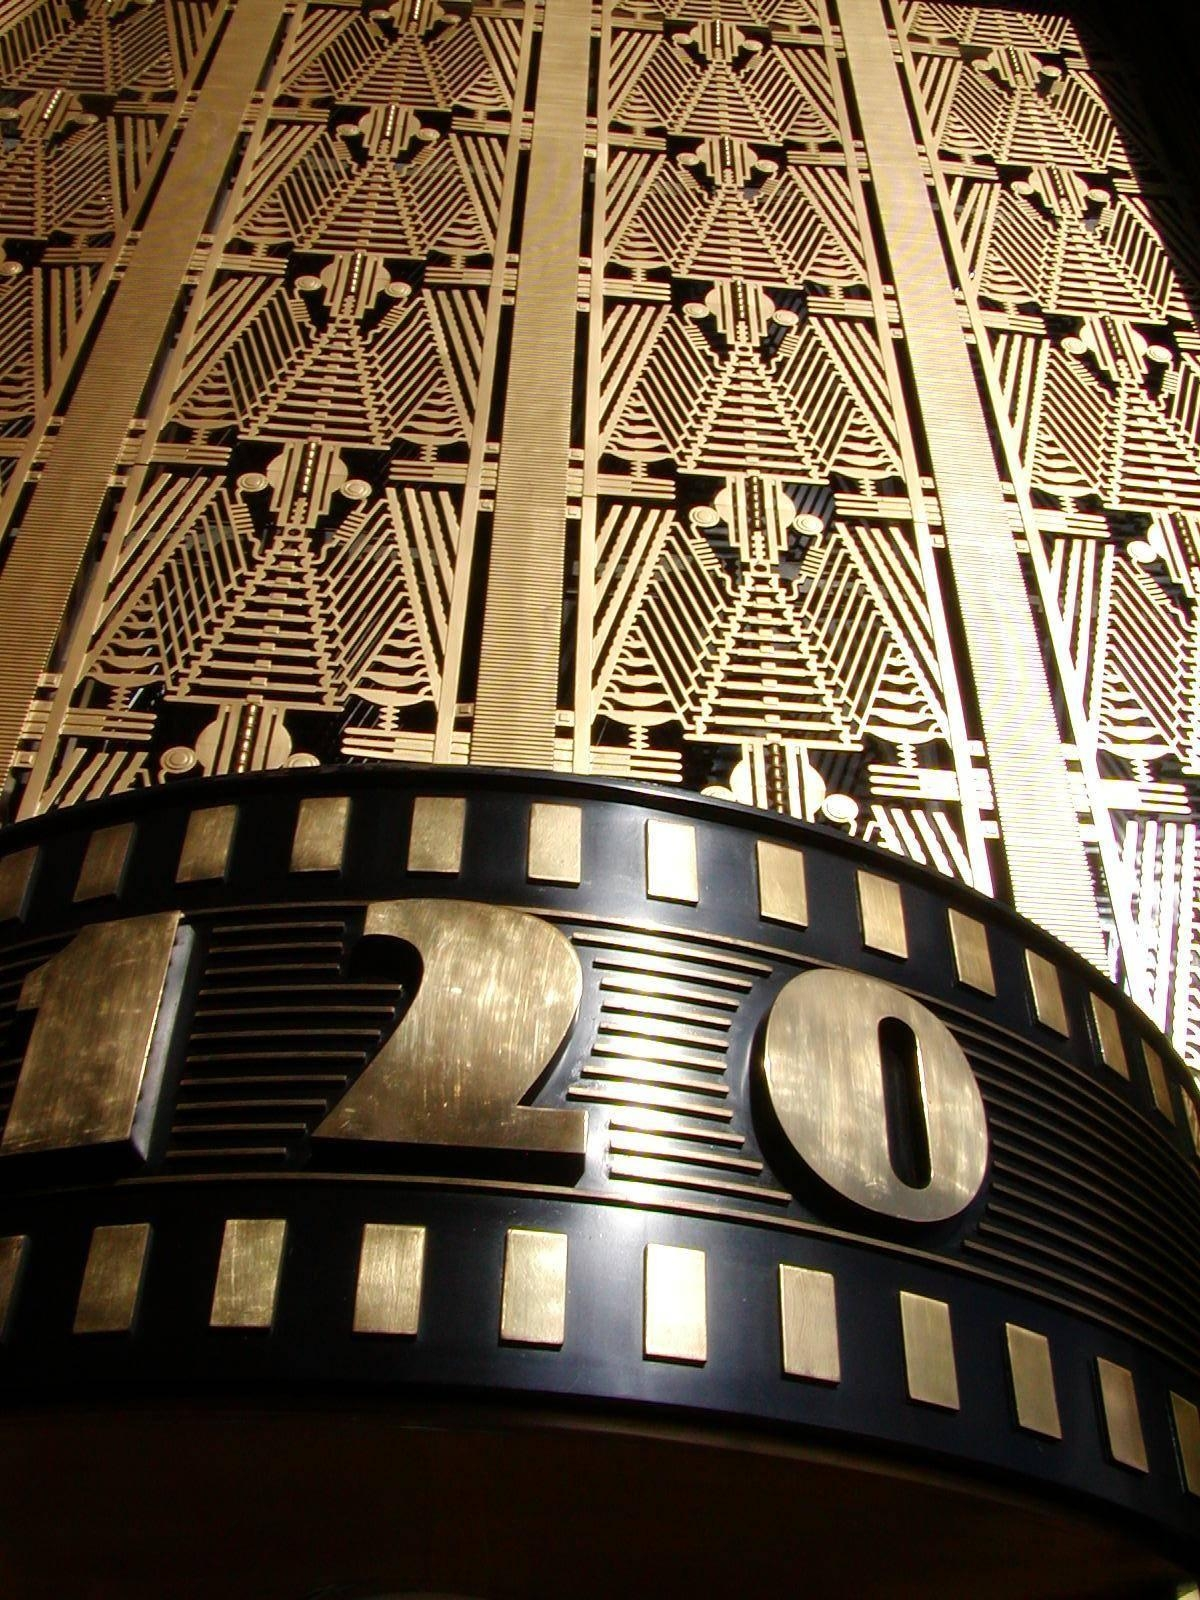 Images About Art Deco On Pinterest Empire State Building And regarding Art Deco Metal Wall Art